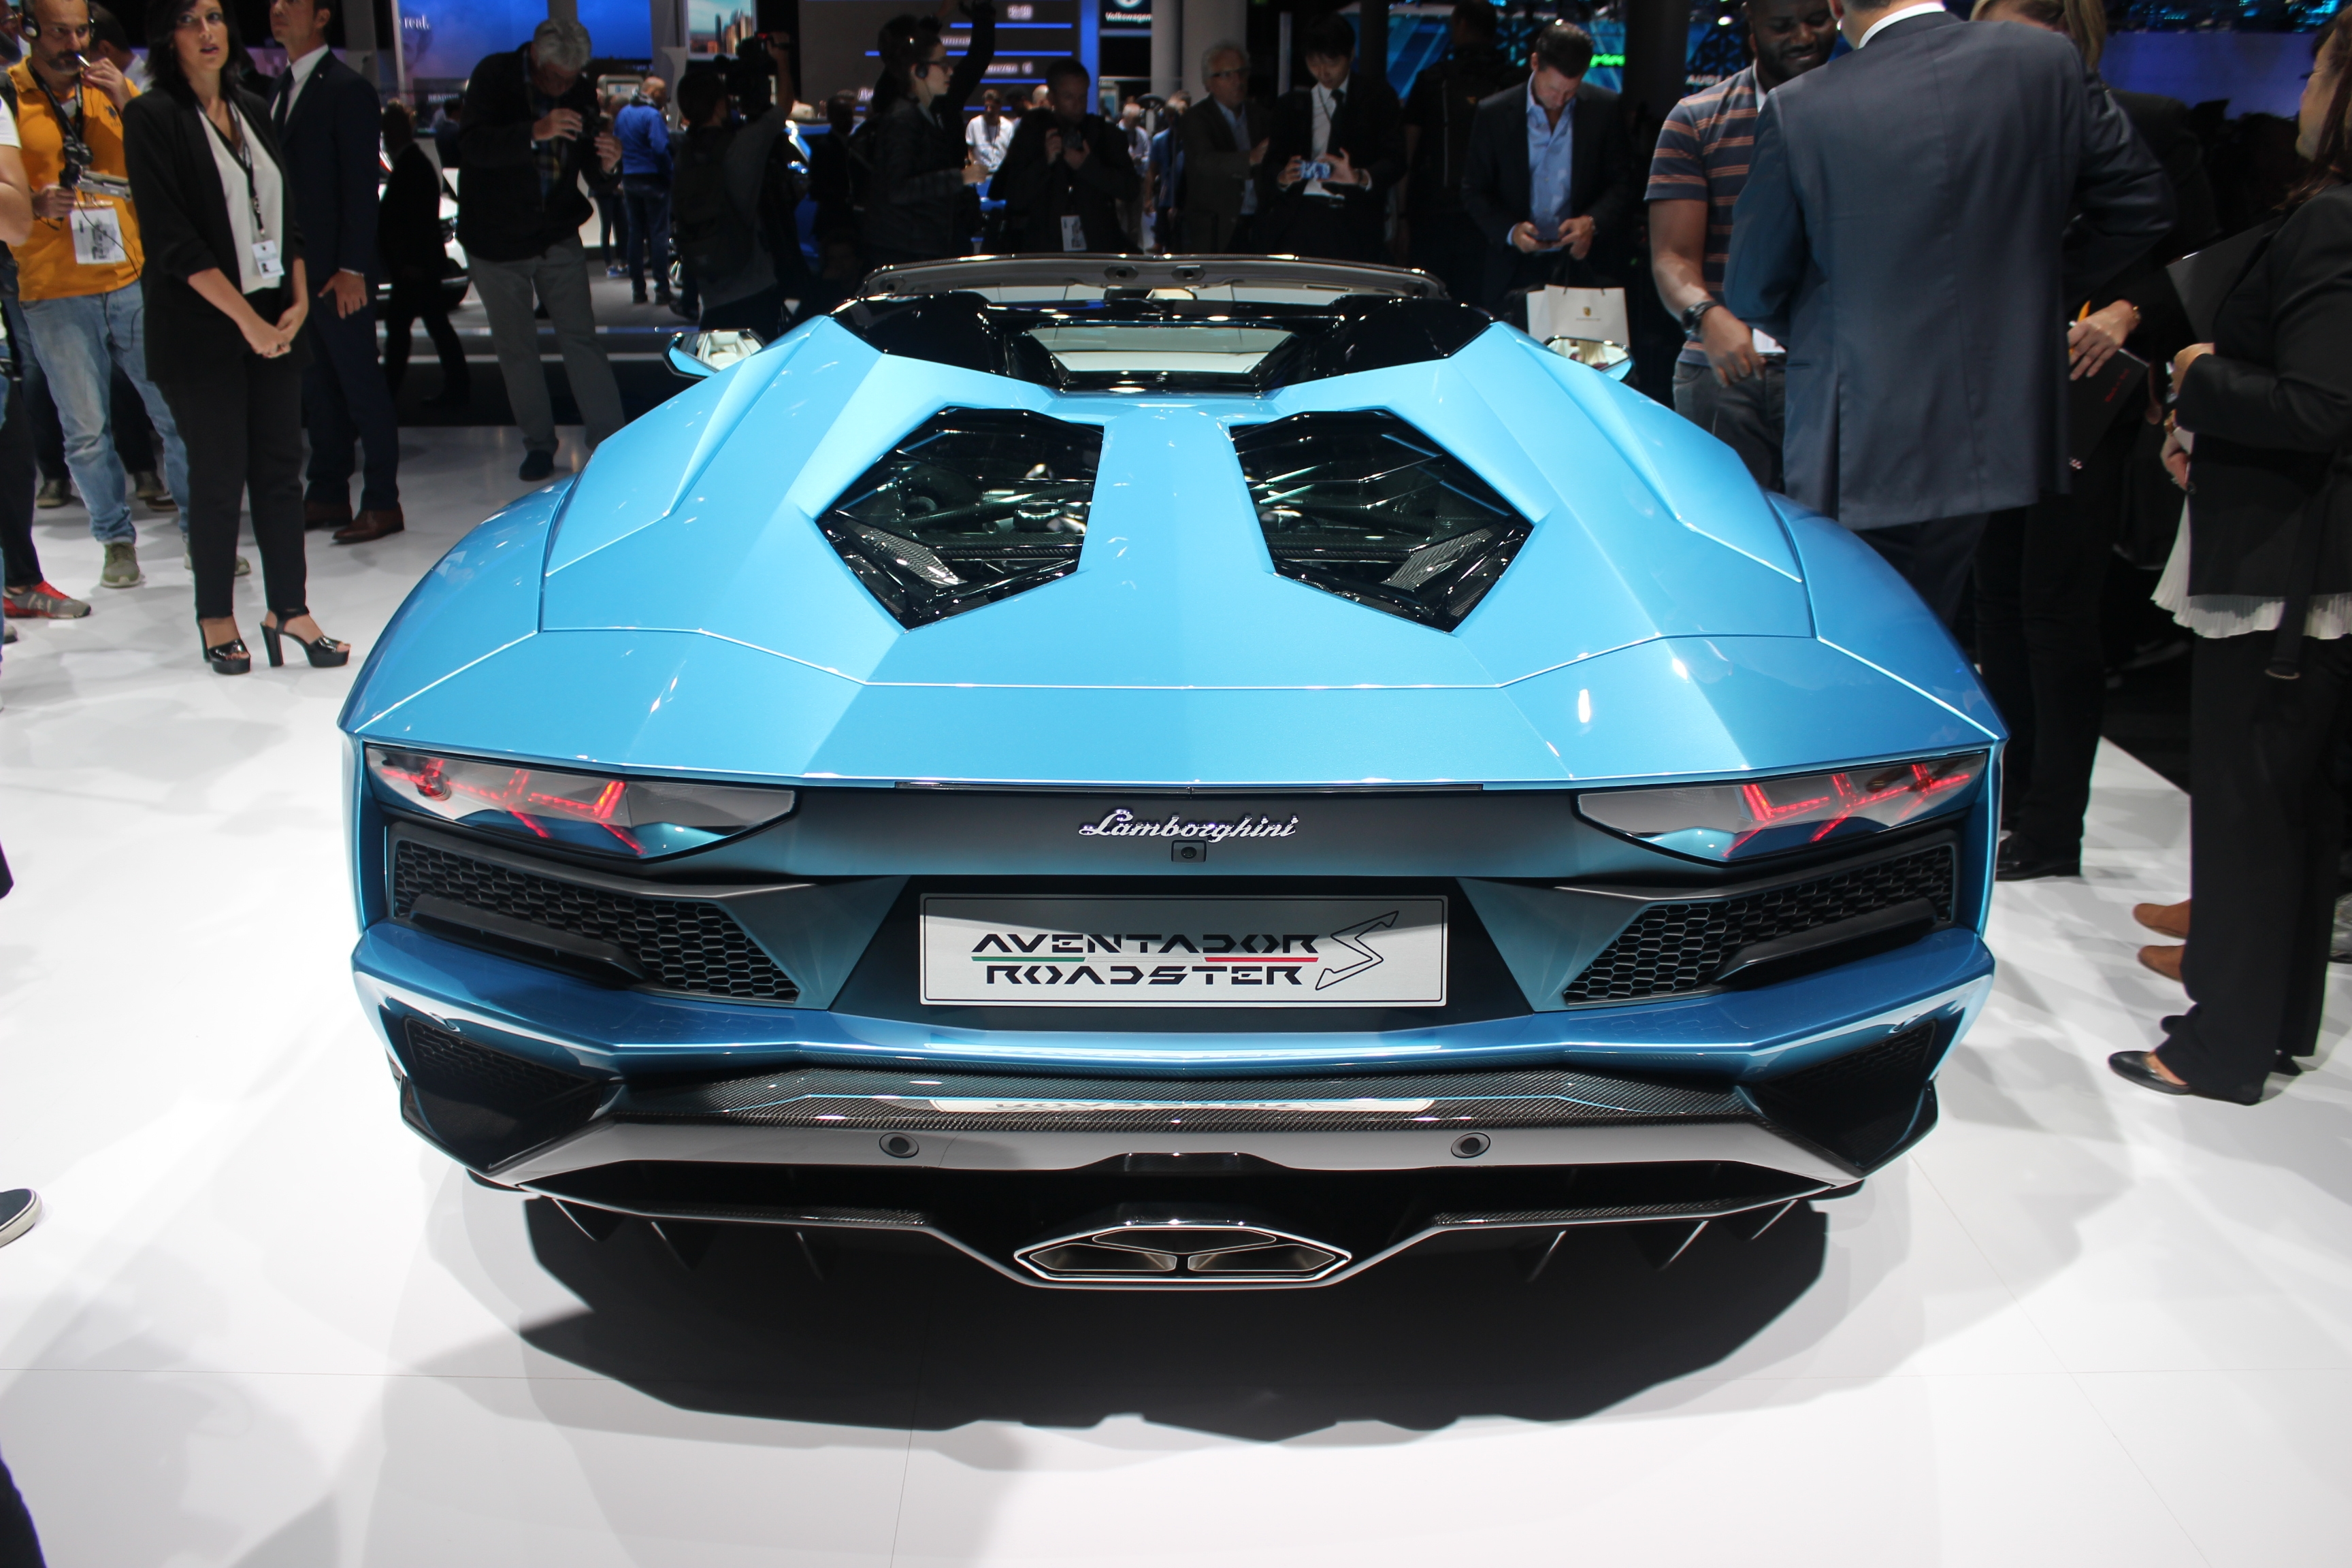 lamborghini aventador s roadster d capsul e vid o en direct du salon de francfort 2017. Black Bedroom Furniture Sets. Home Design Ideas